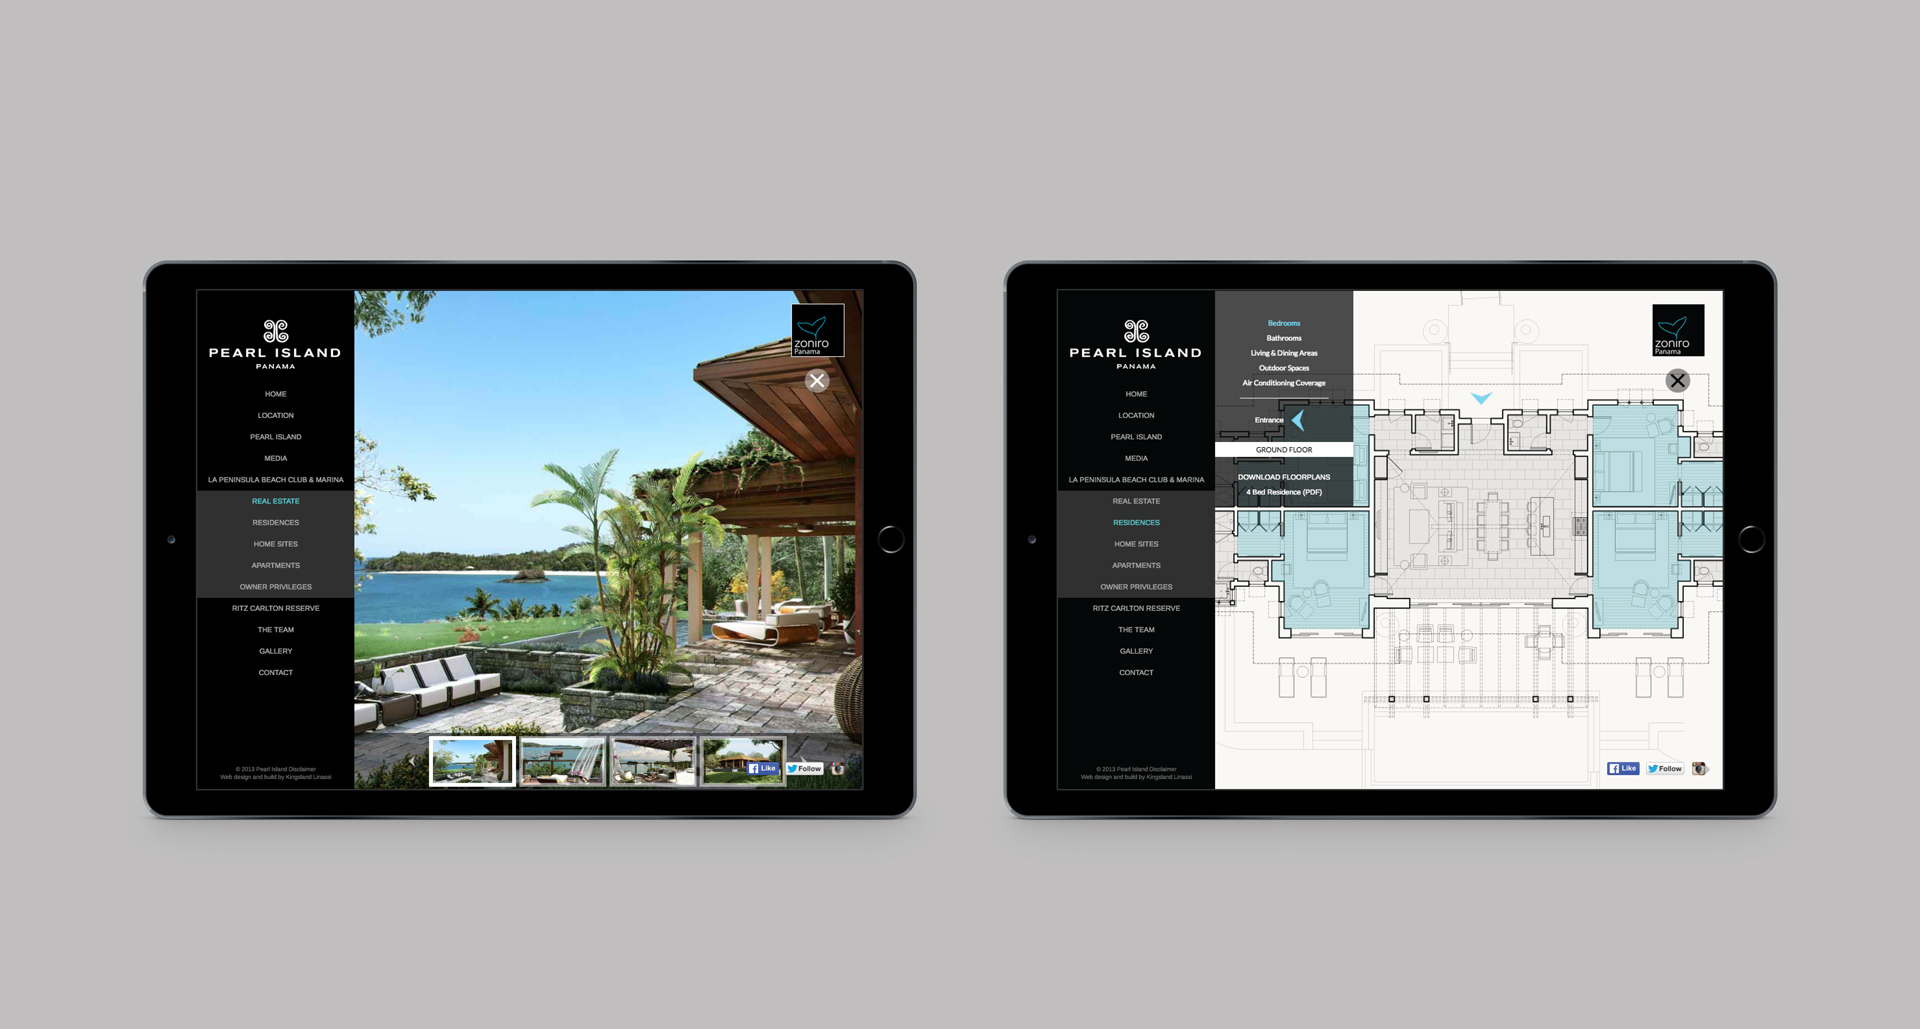 Responsive website viewed on a pair of iPads | Luxury Resort marketing | Pearl Island